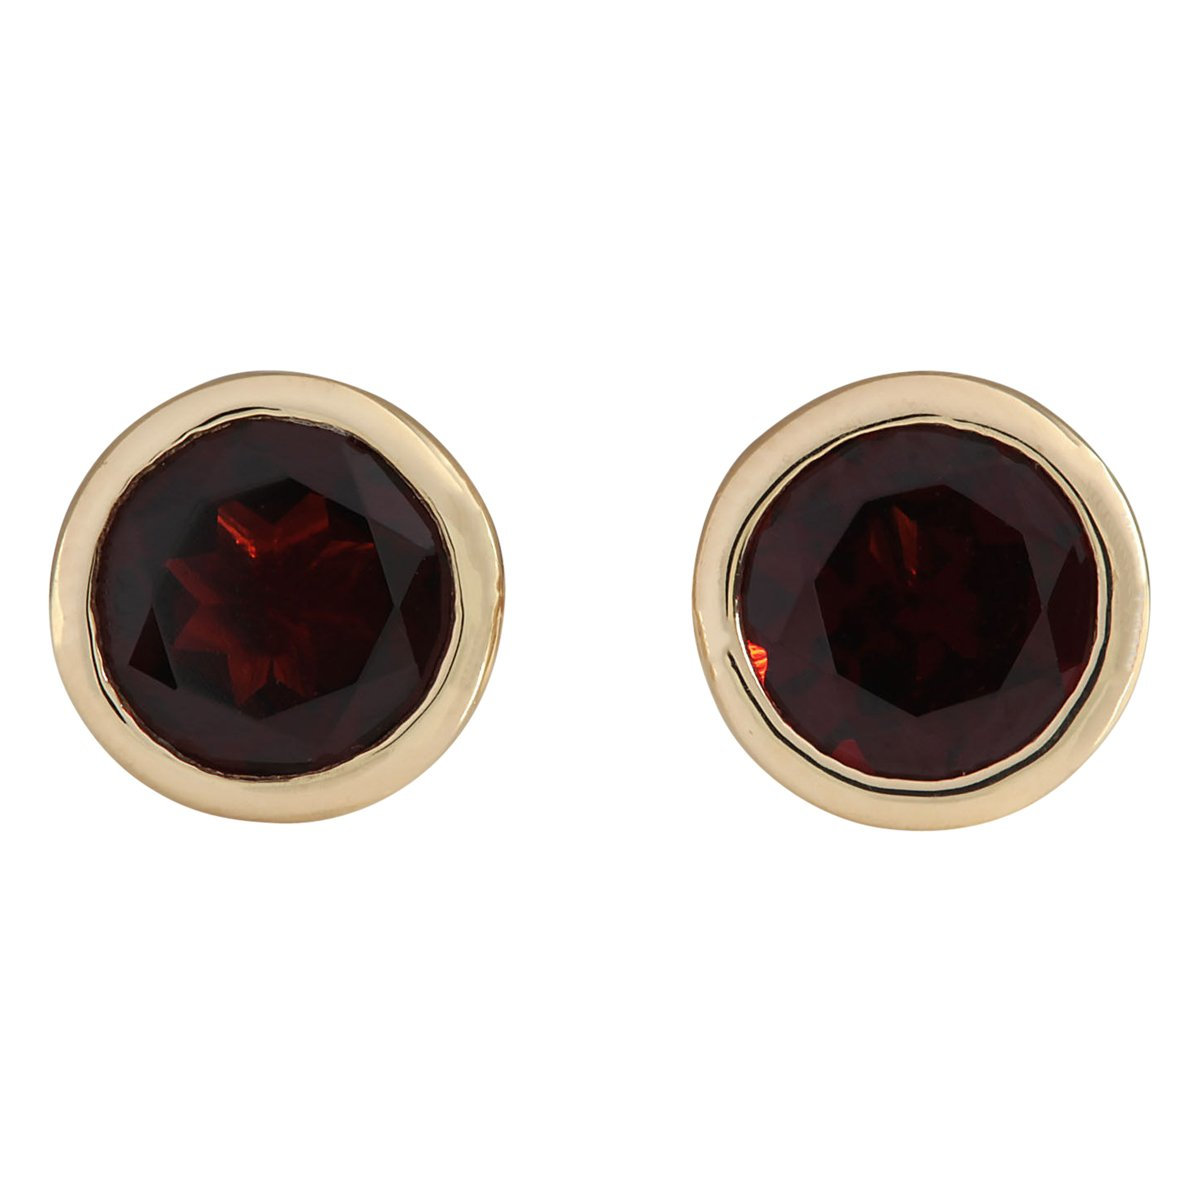 3 Carat Natural Red Garnet 14K Yellow Gold Solitaire Stud Earrings for Women Exclusively Handcrafted in USA by Unknown